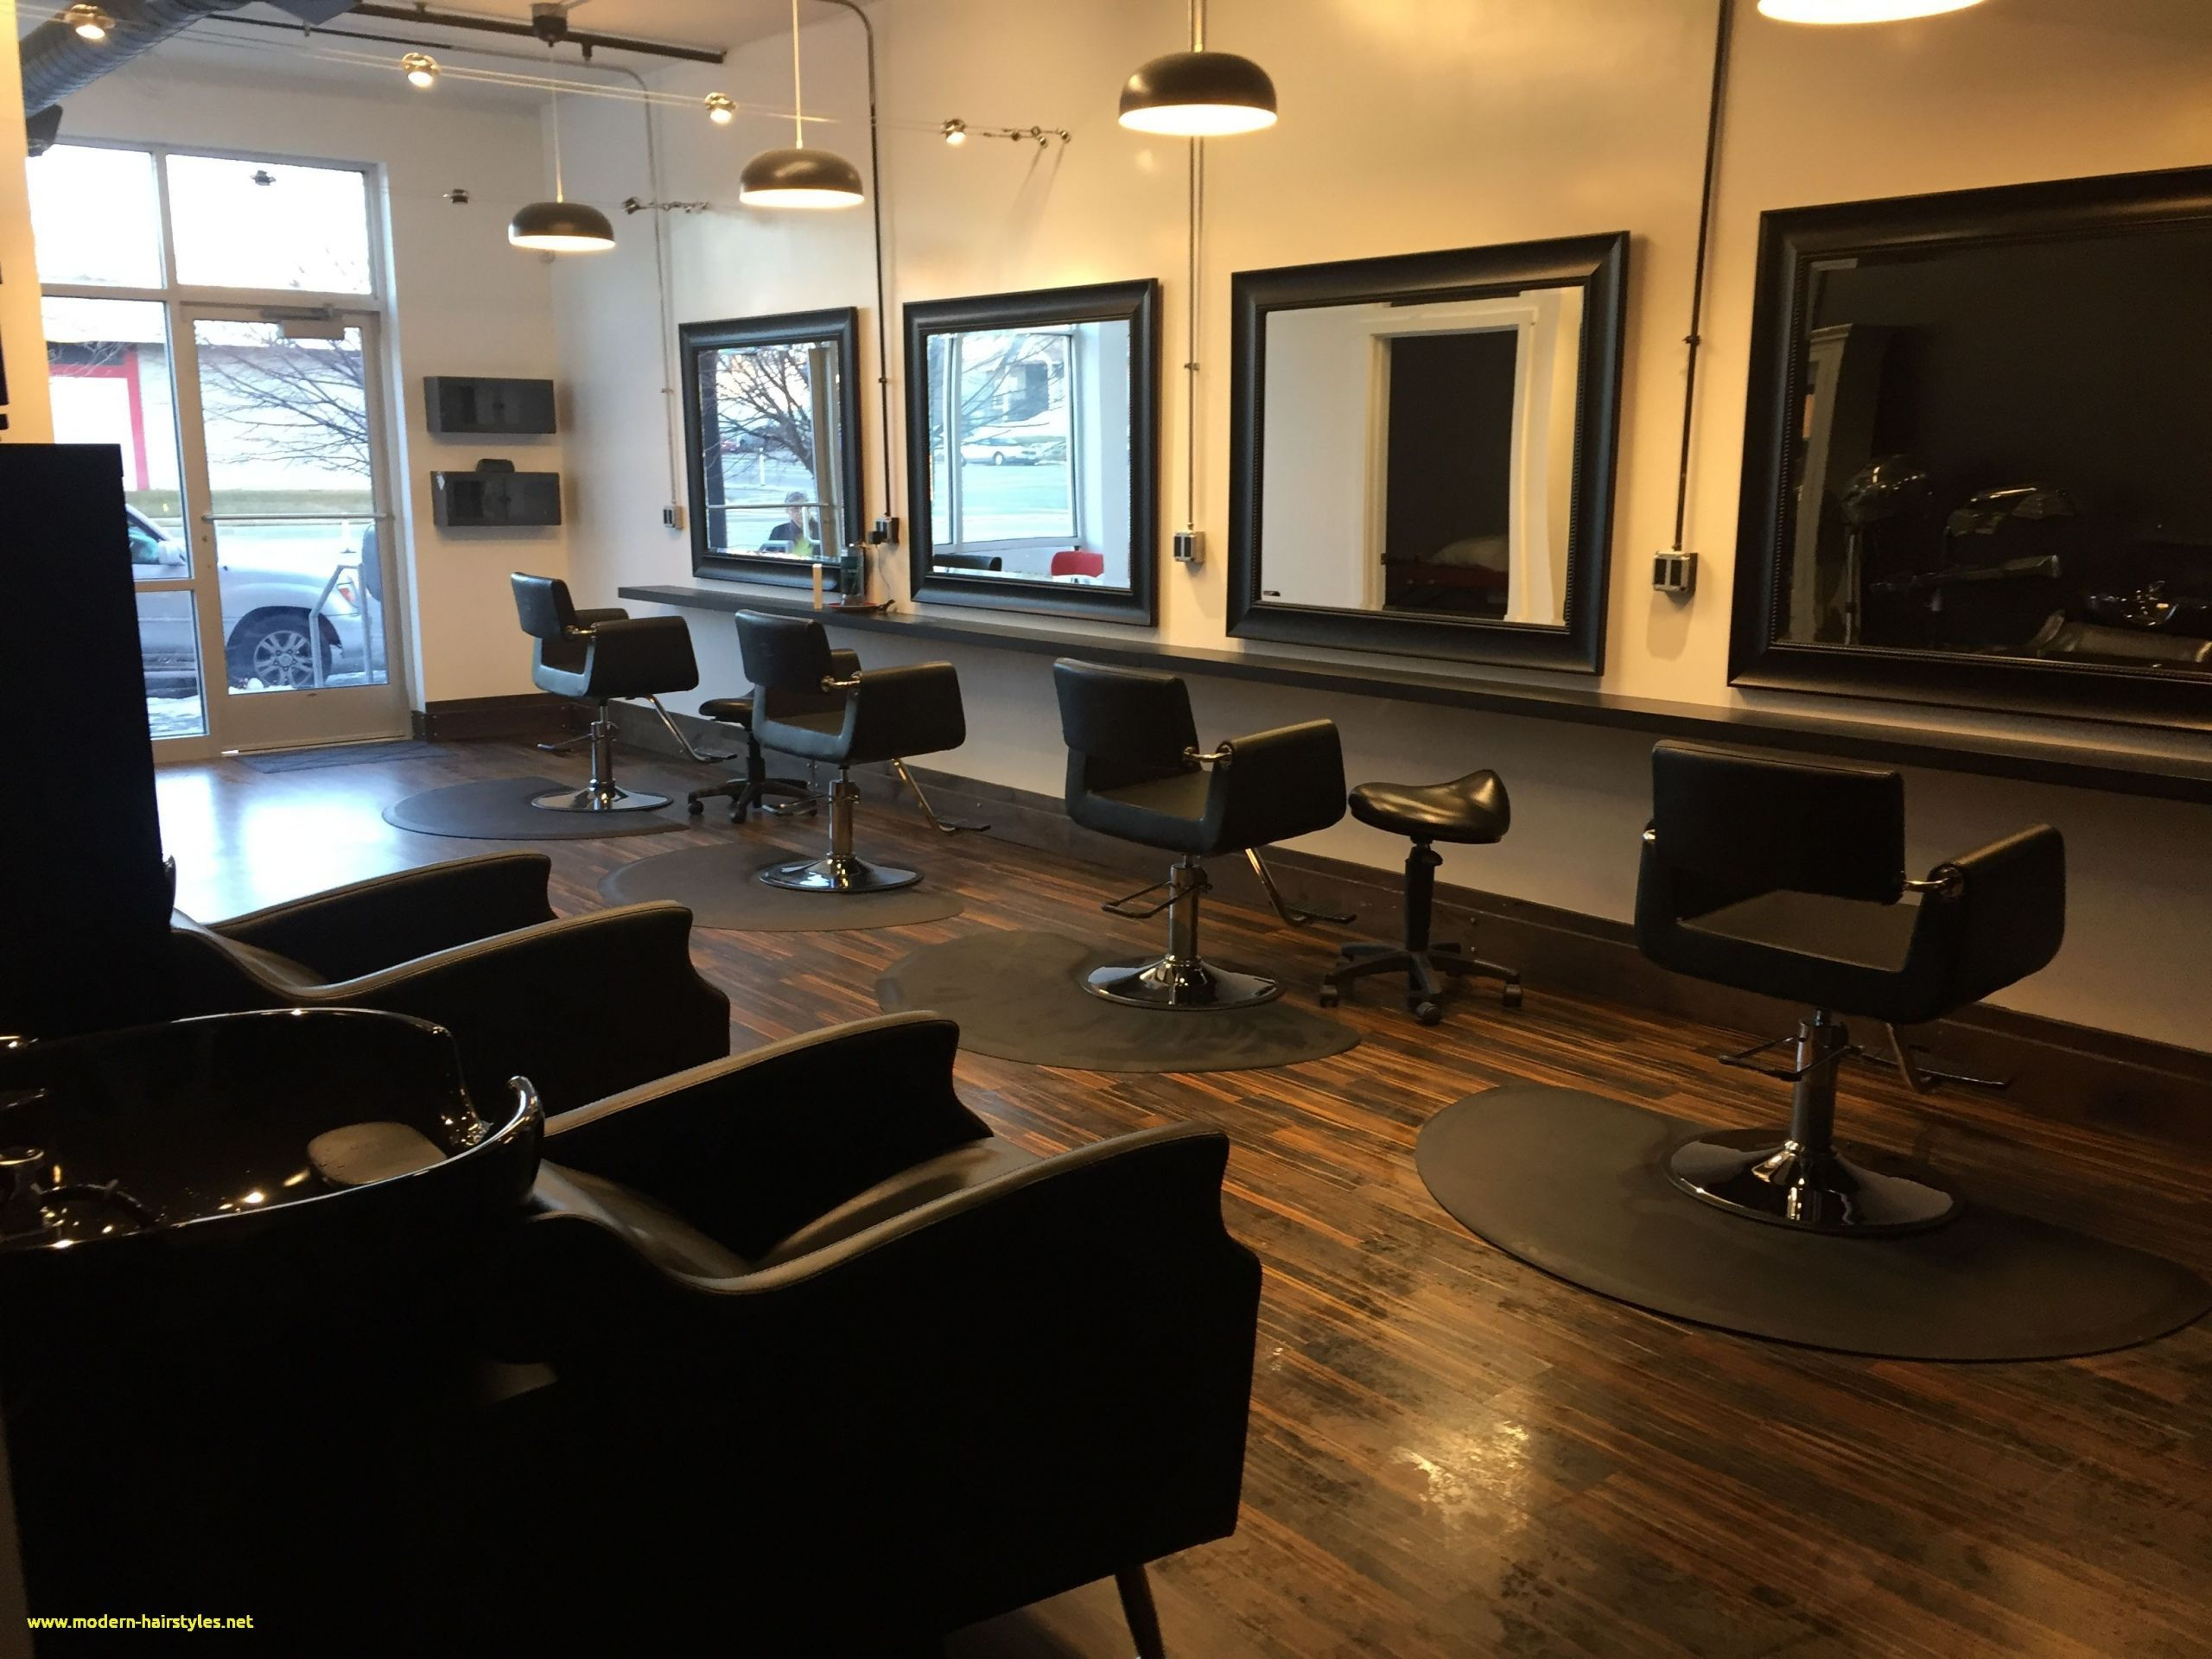 How Much Is Booth Rent At A Hair Salon Salon Booth Rental Esthetician Room Studio Rental